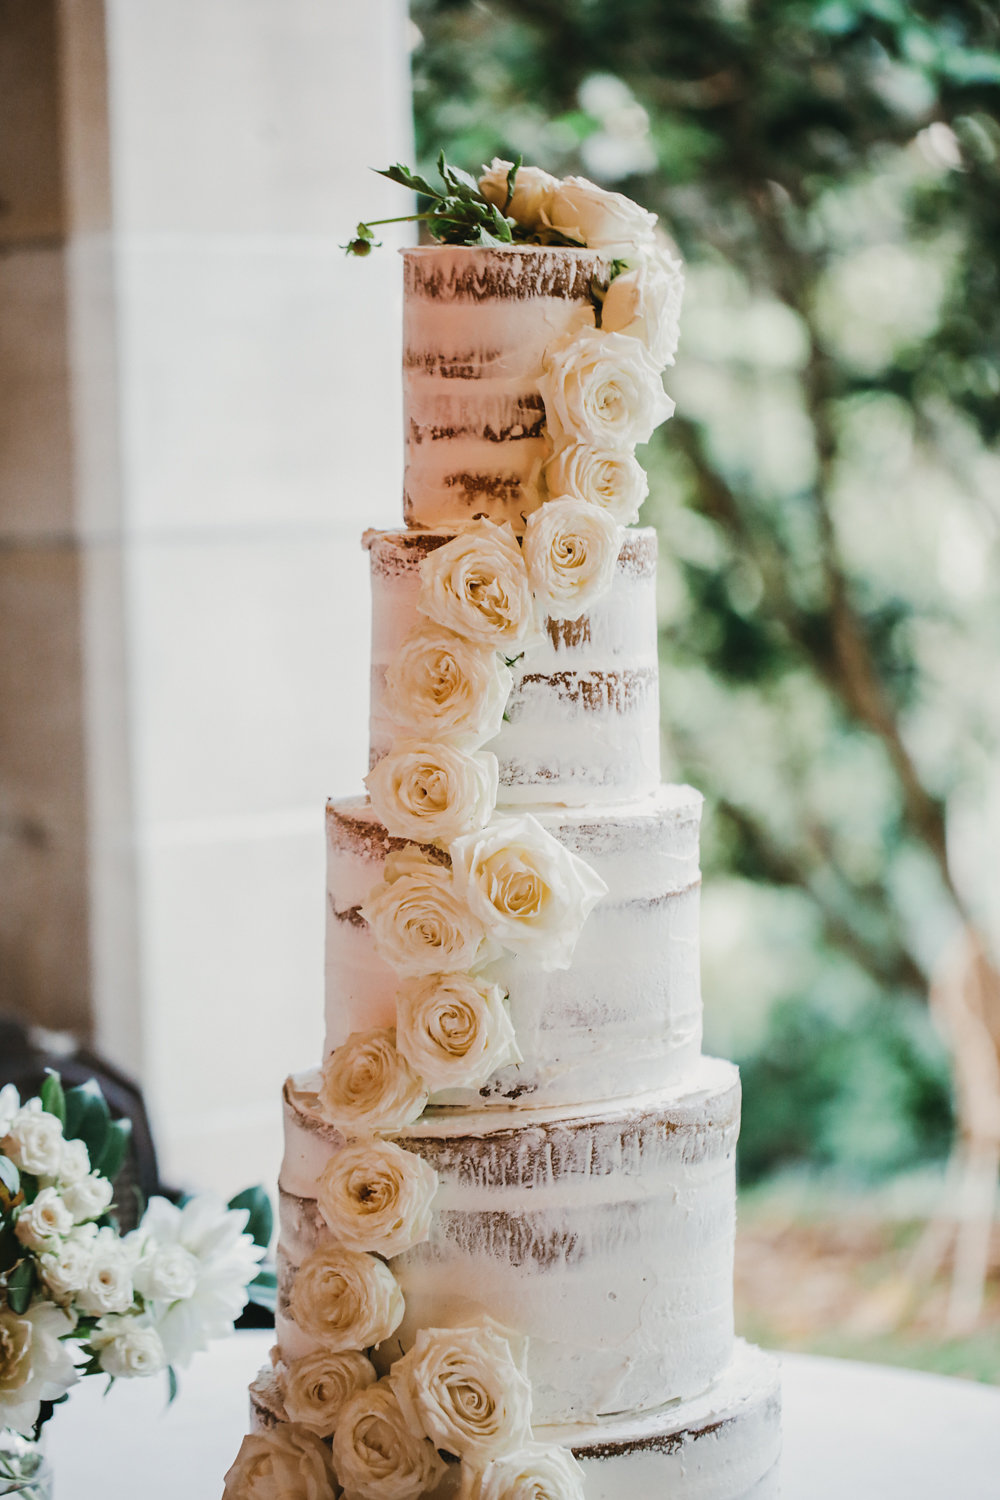 tiered wedding cake with flowers - photo by Lara Hotz http://ruffledblog.com/secret-garden-inspired-australian-wedding